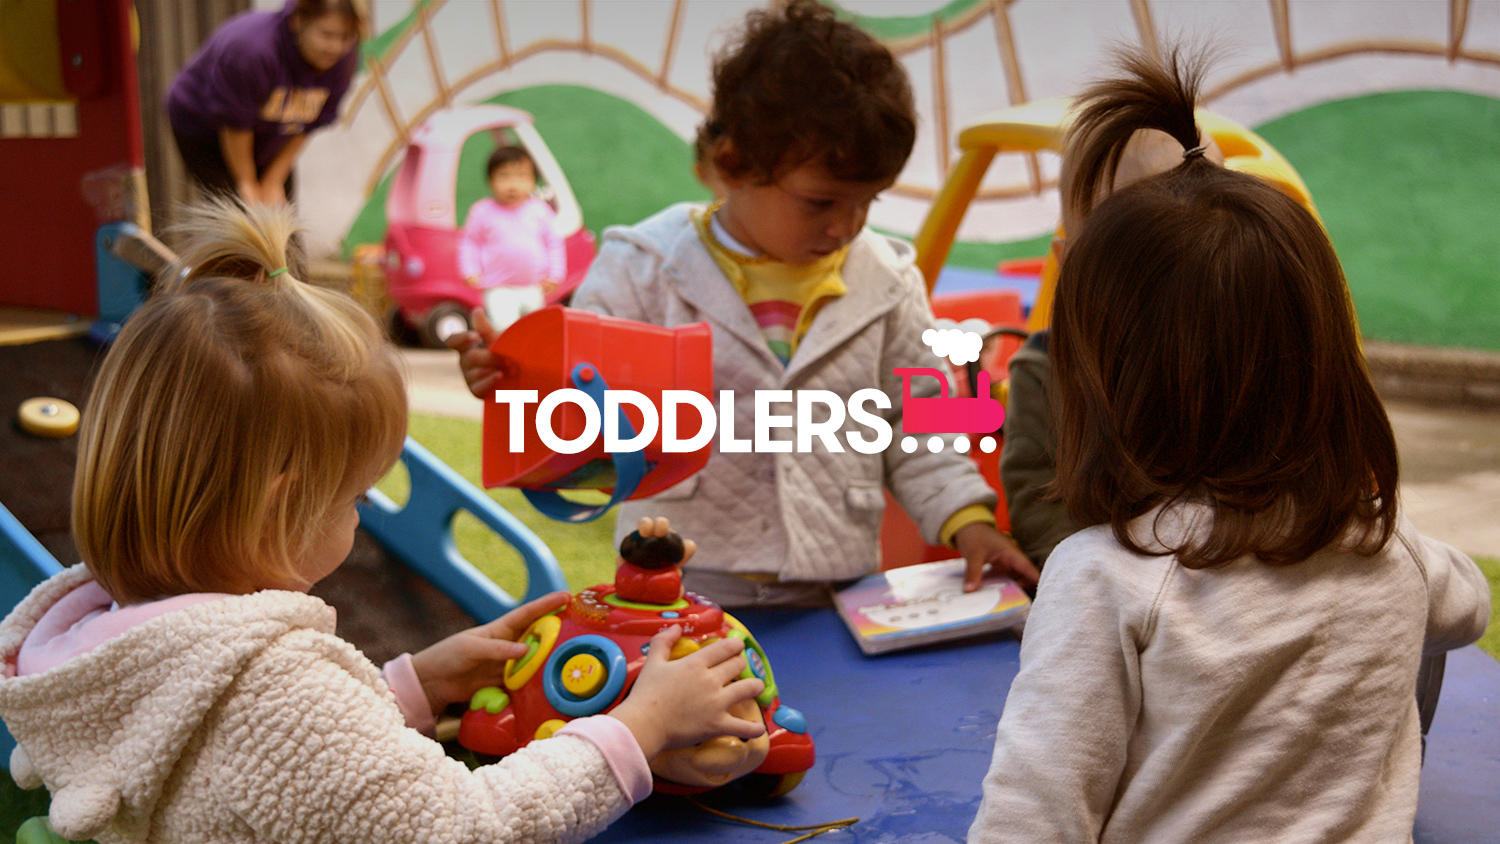 LesEnfants_Toddlers_08.jpg